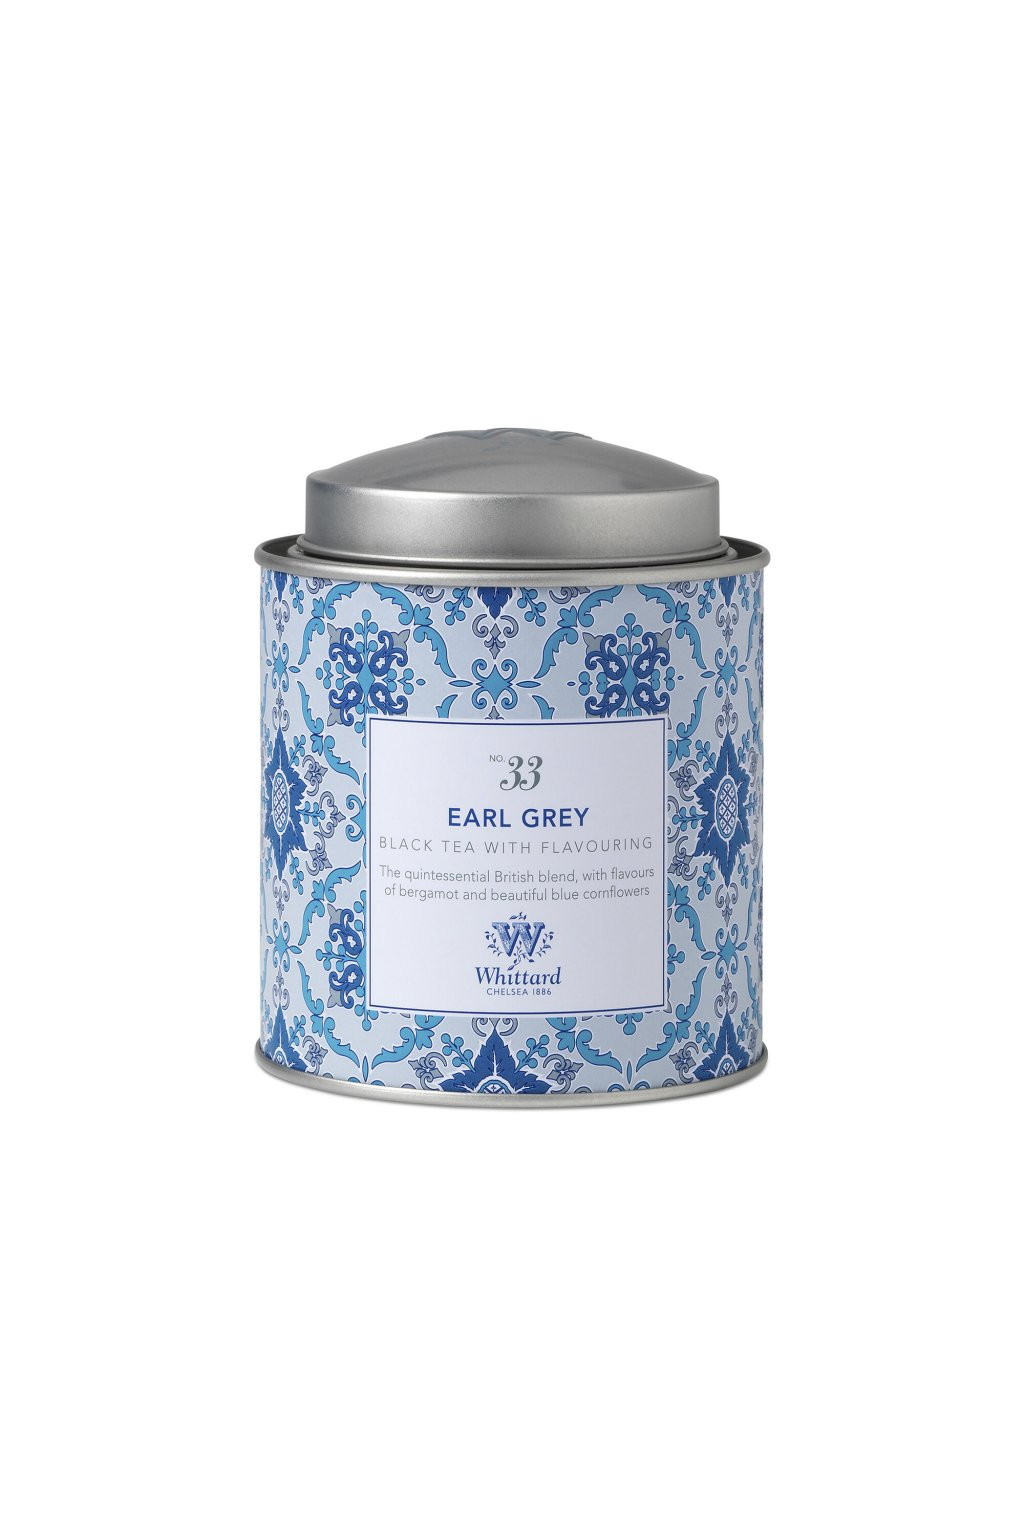 325704 Tea Discoveries Earl Grey Caddy 1